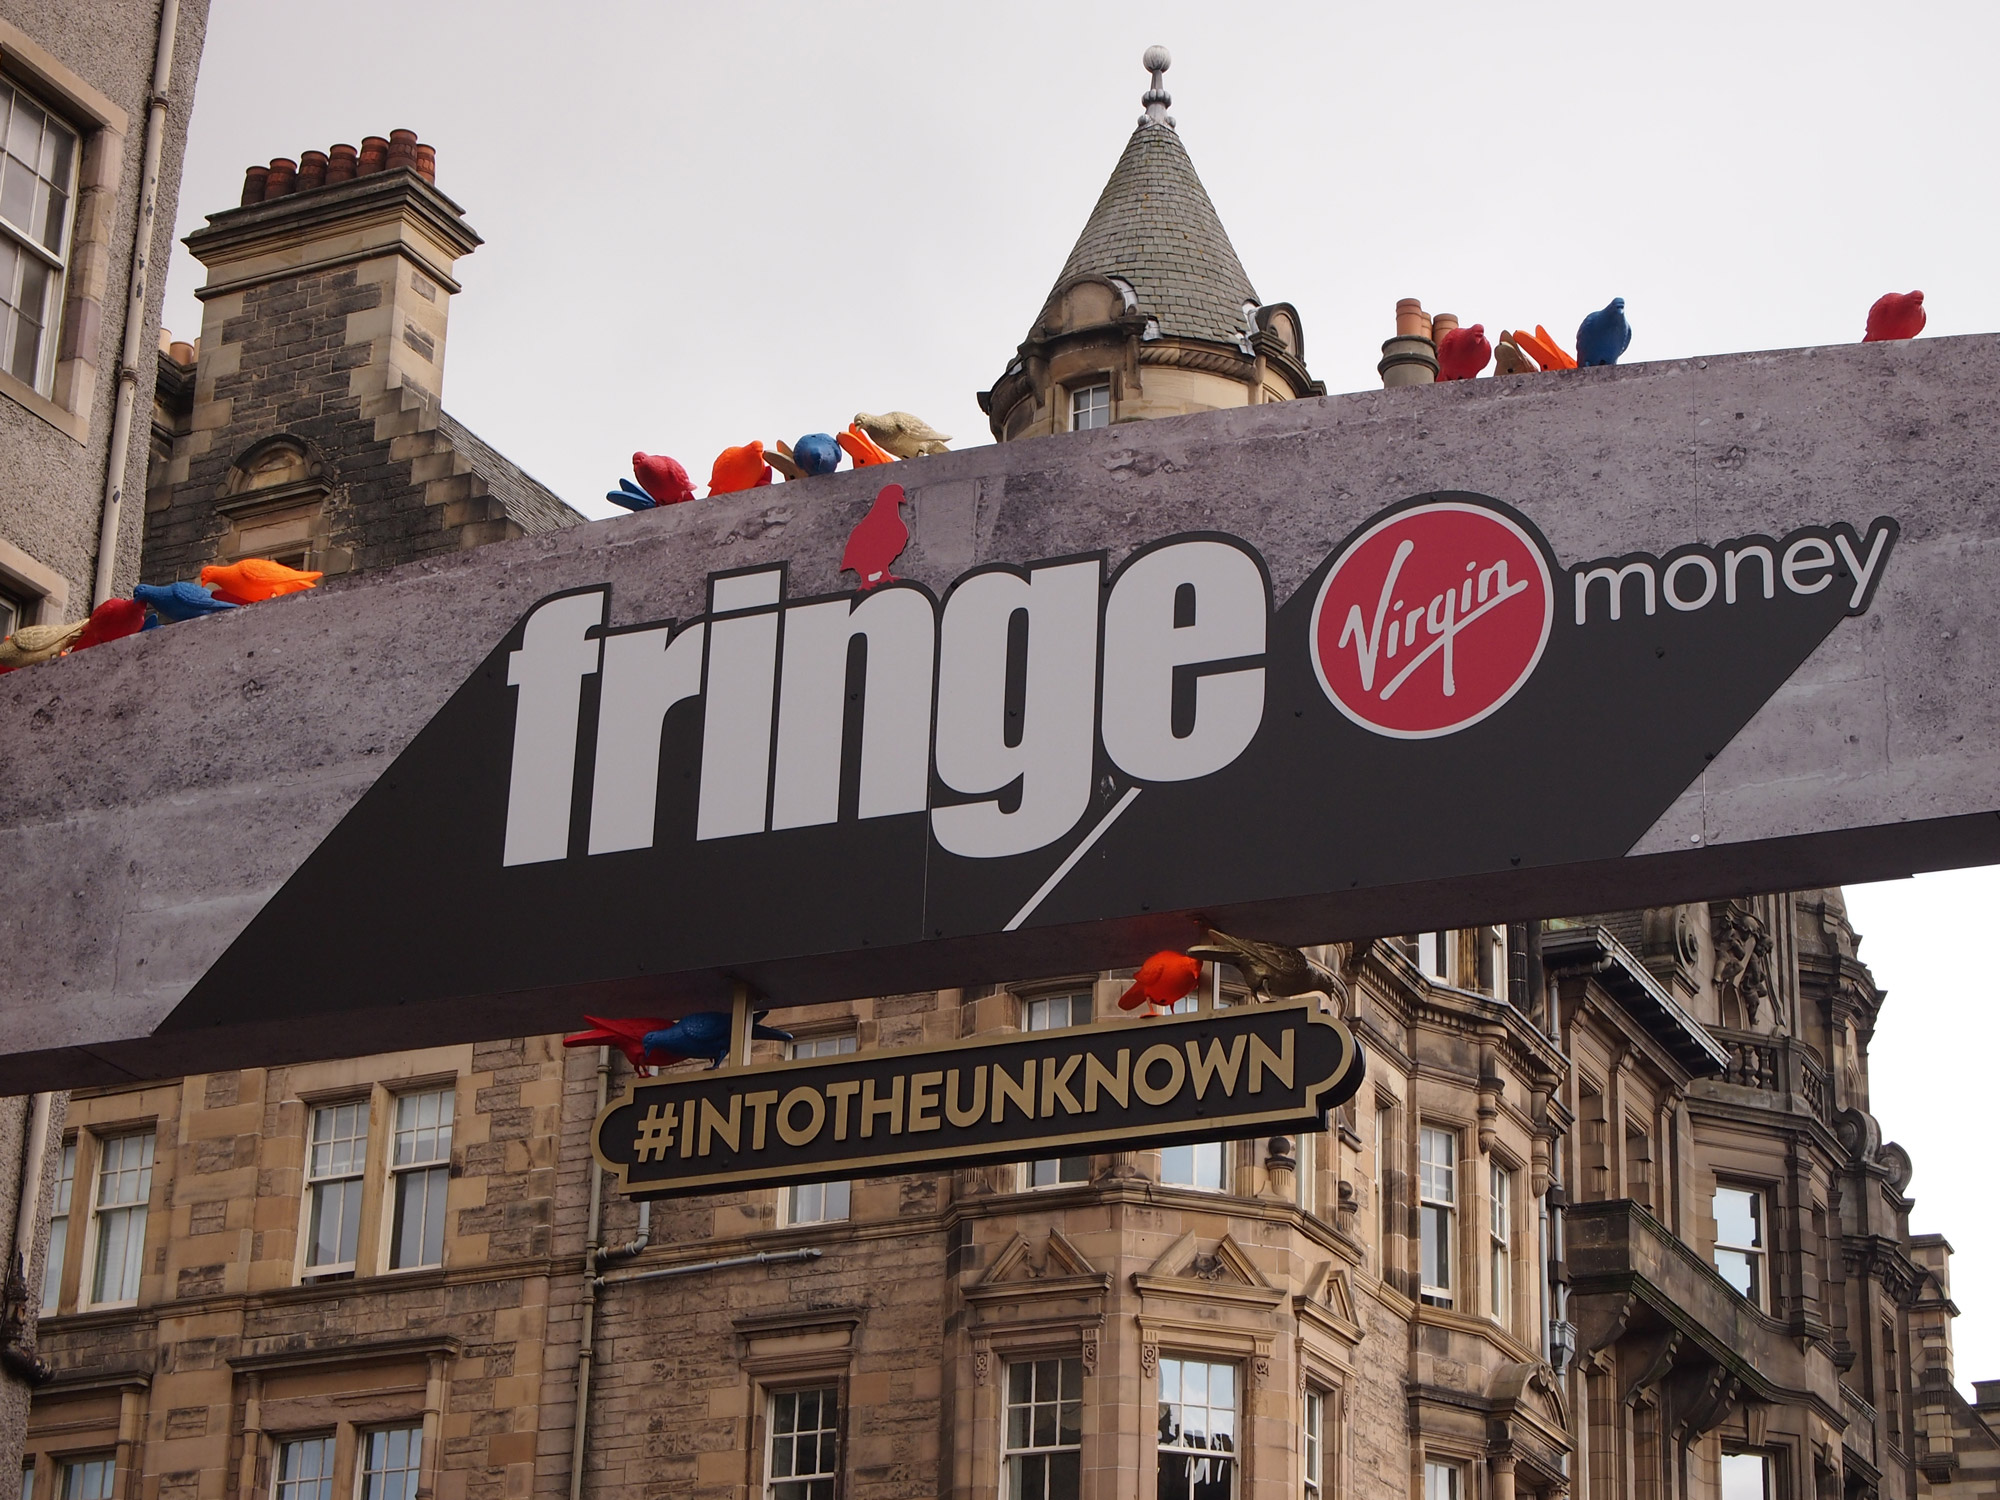 A sign hangs across a road, it is covered in multi-coloured plastic pigeons. The sign reads 'Fringe, into the unknown'. Behind it we see gothic buildings.